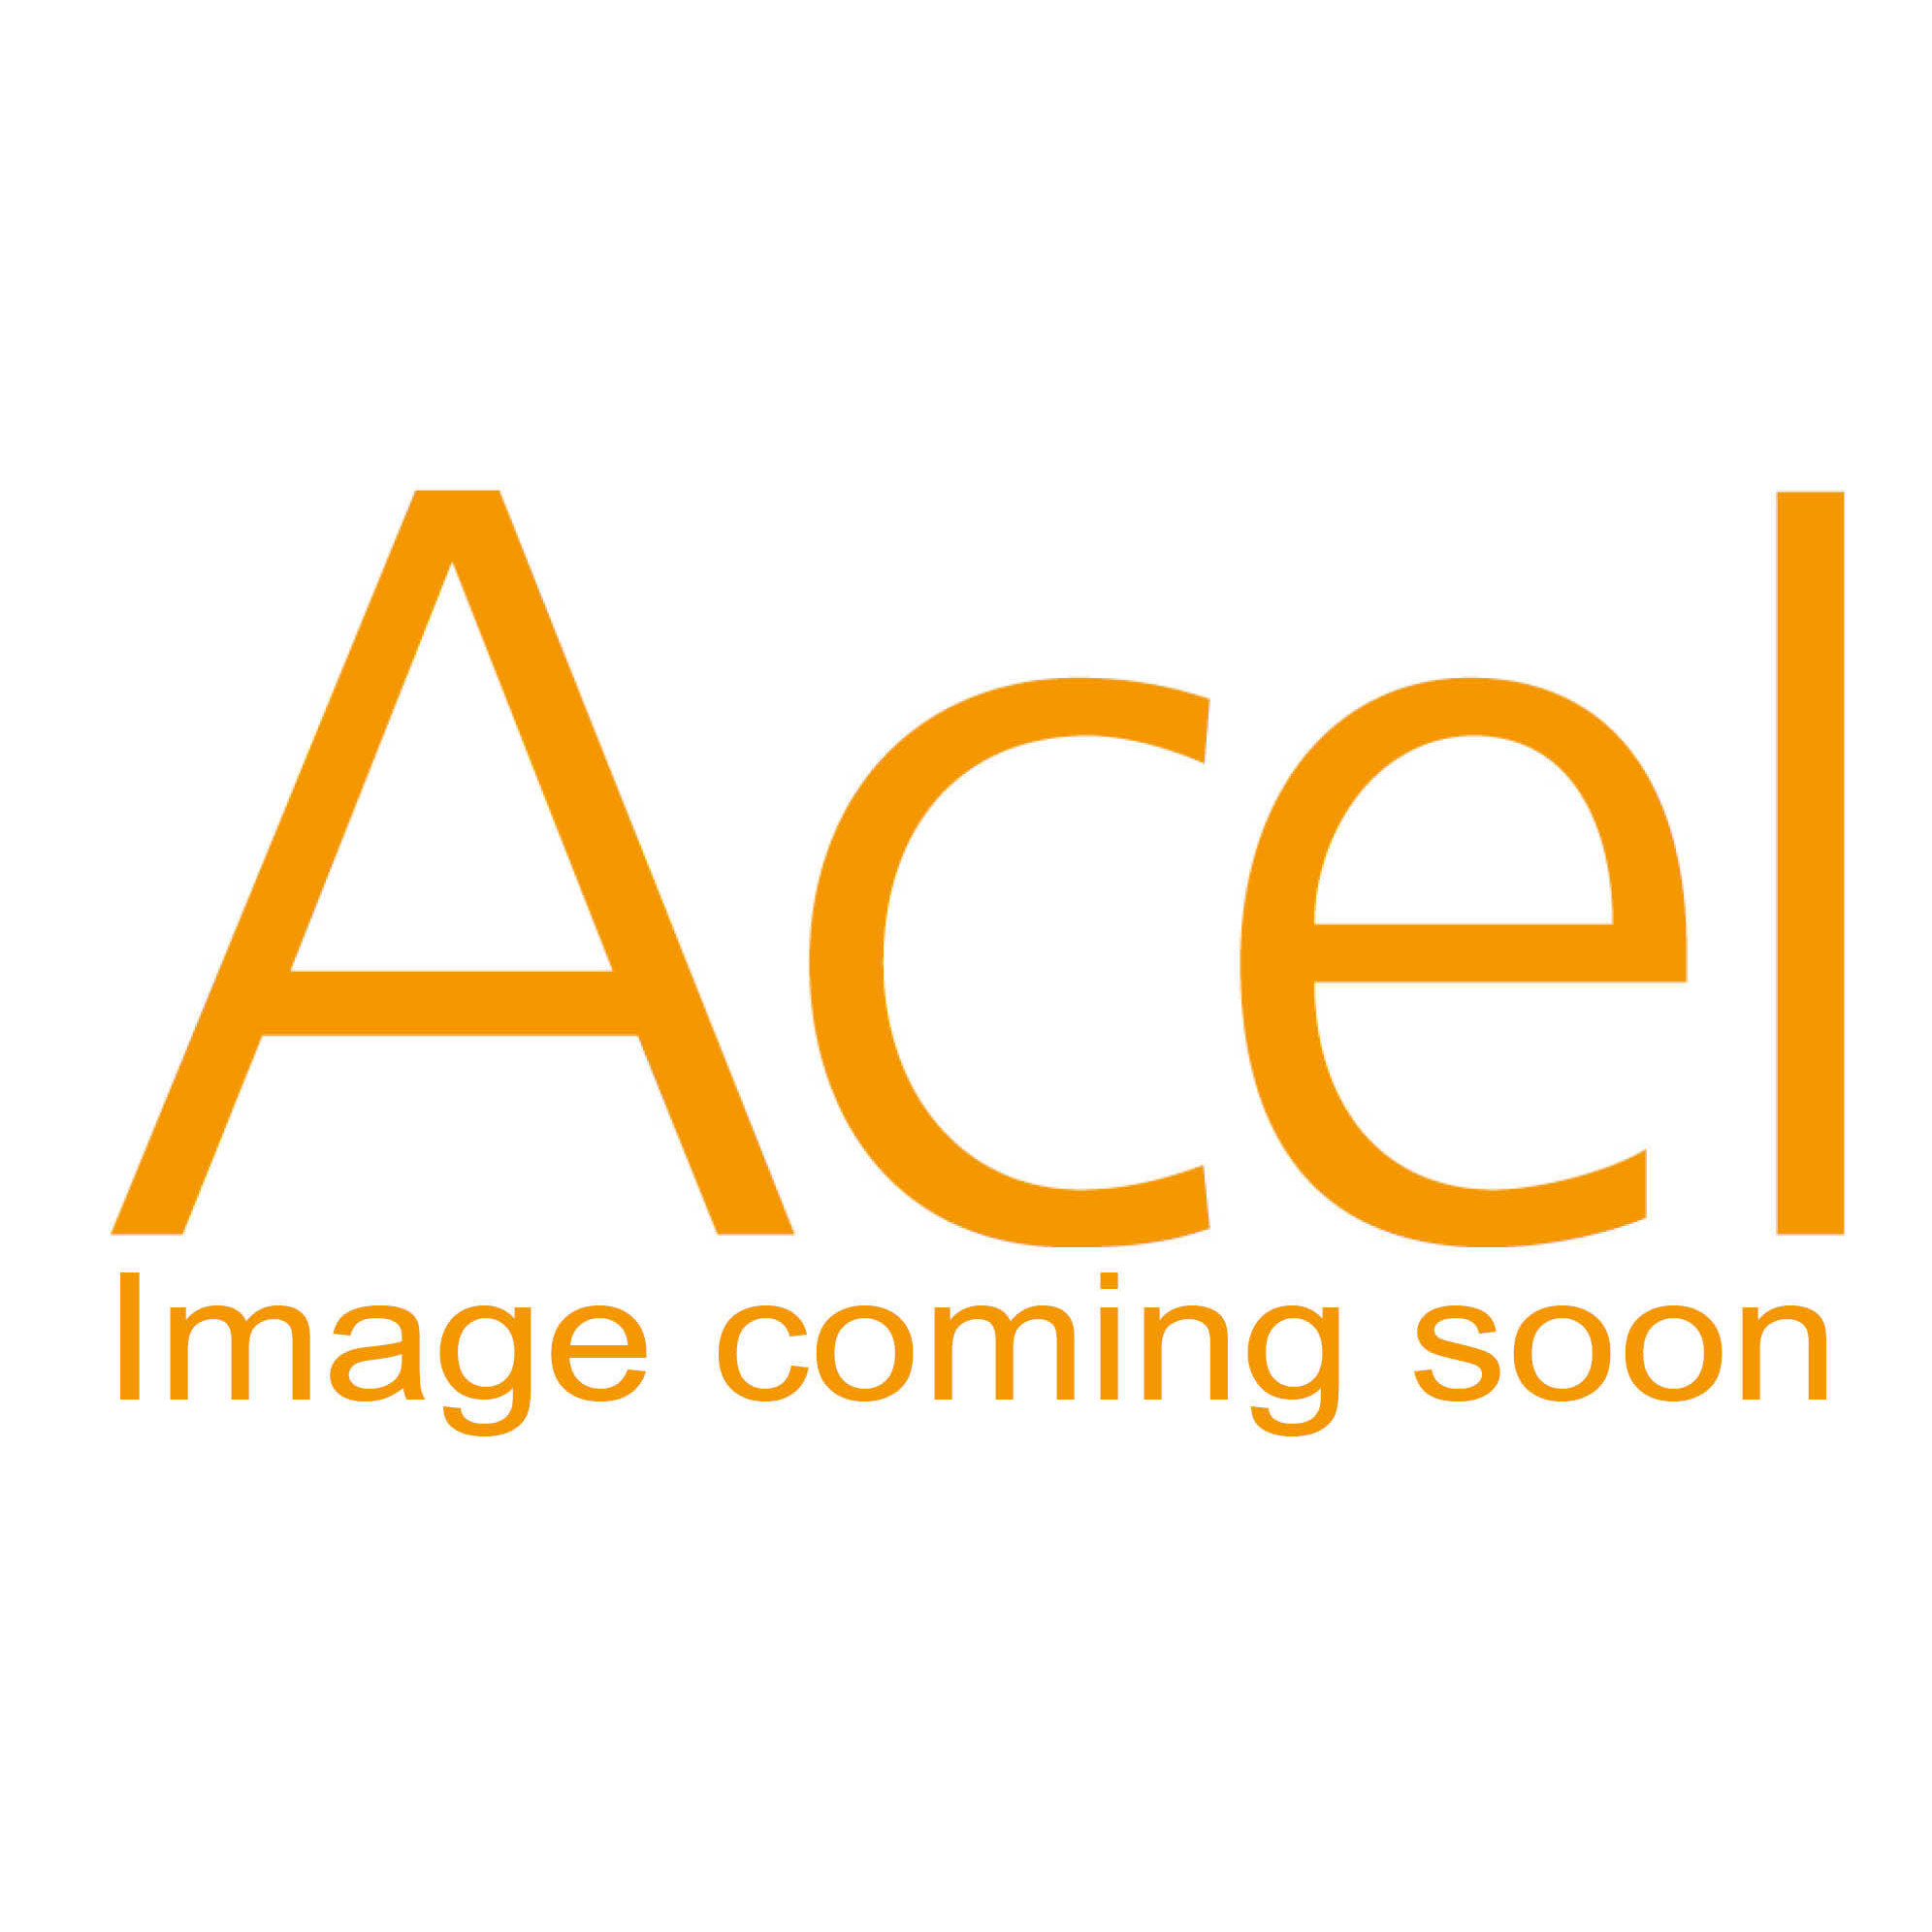 Self Adhesive Vinyl Test and Inspection Labels - Pass test labels small 35 x 15mm Pk50